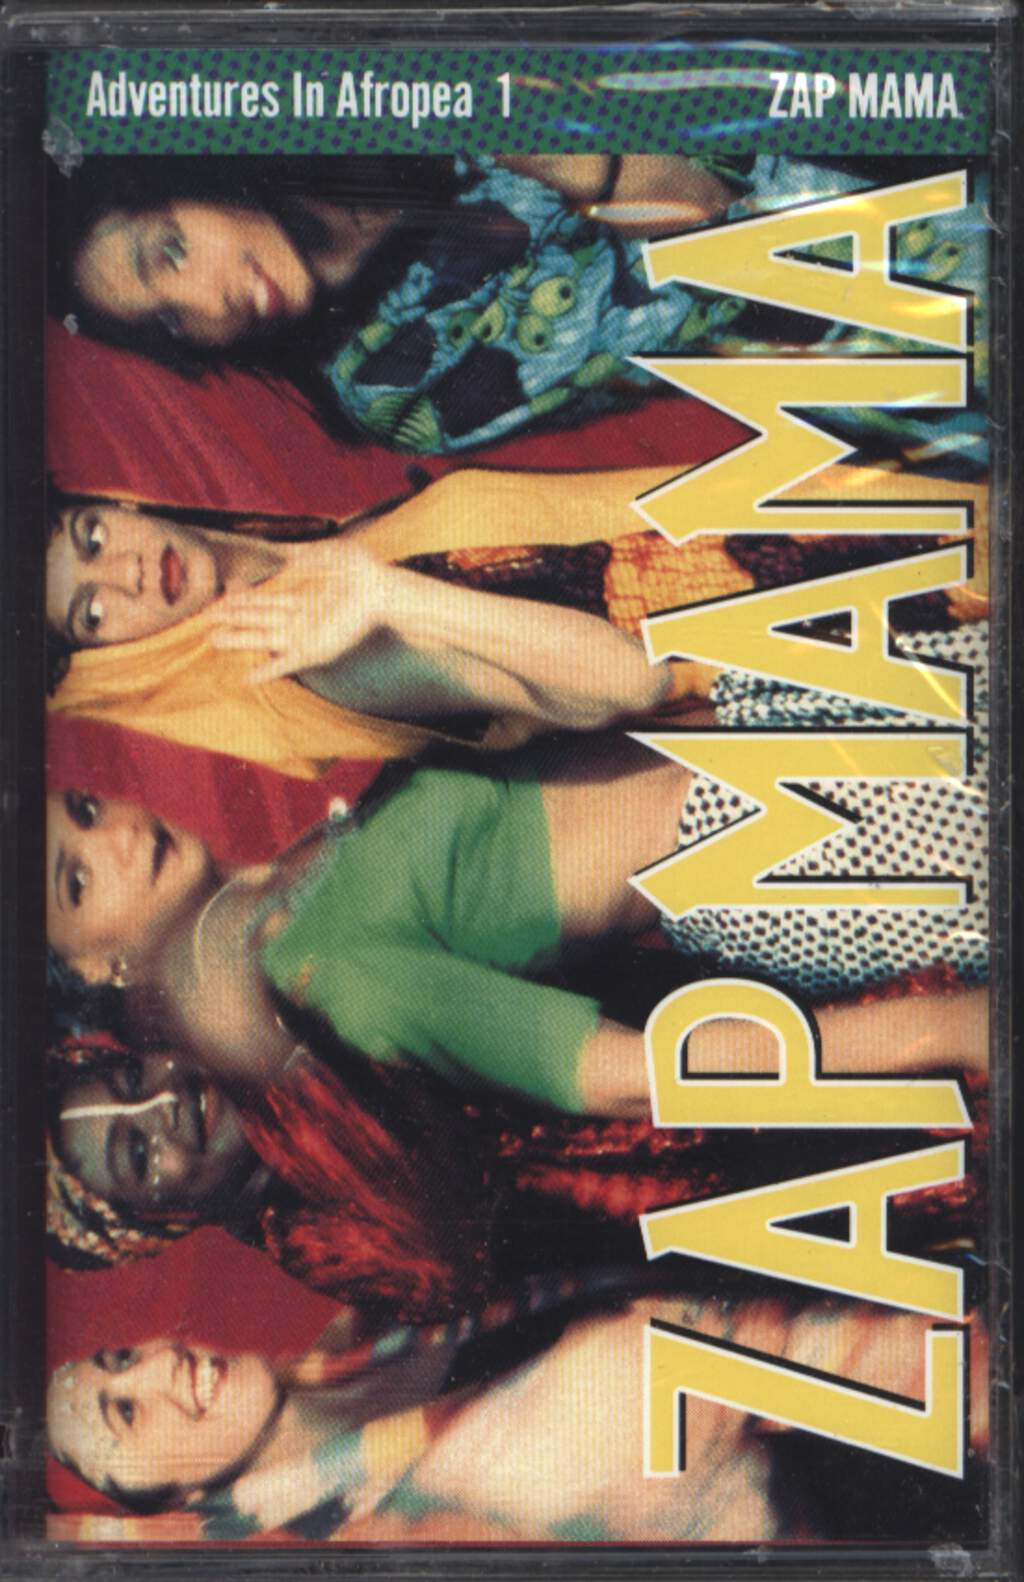 Zap Mama: Adventures in Afropea 1, Compact Cassette